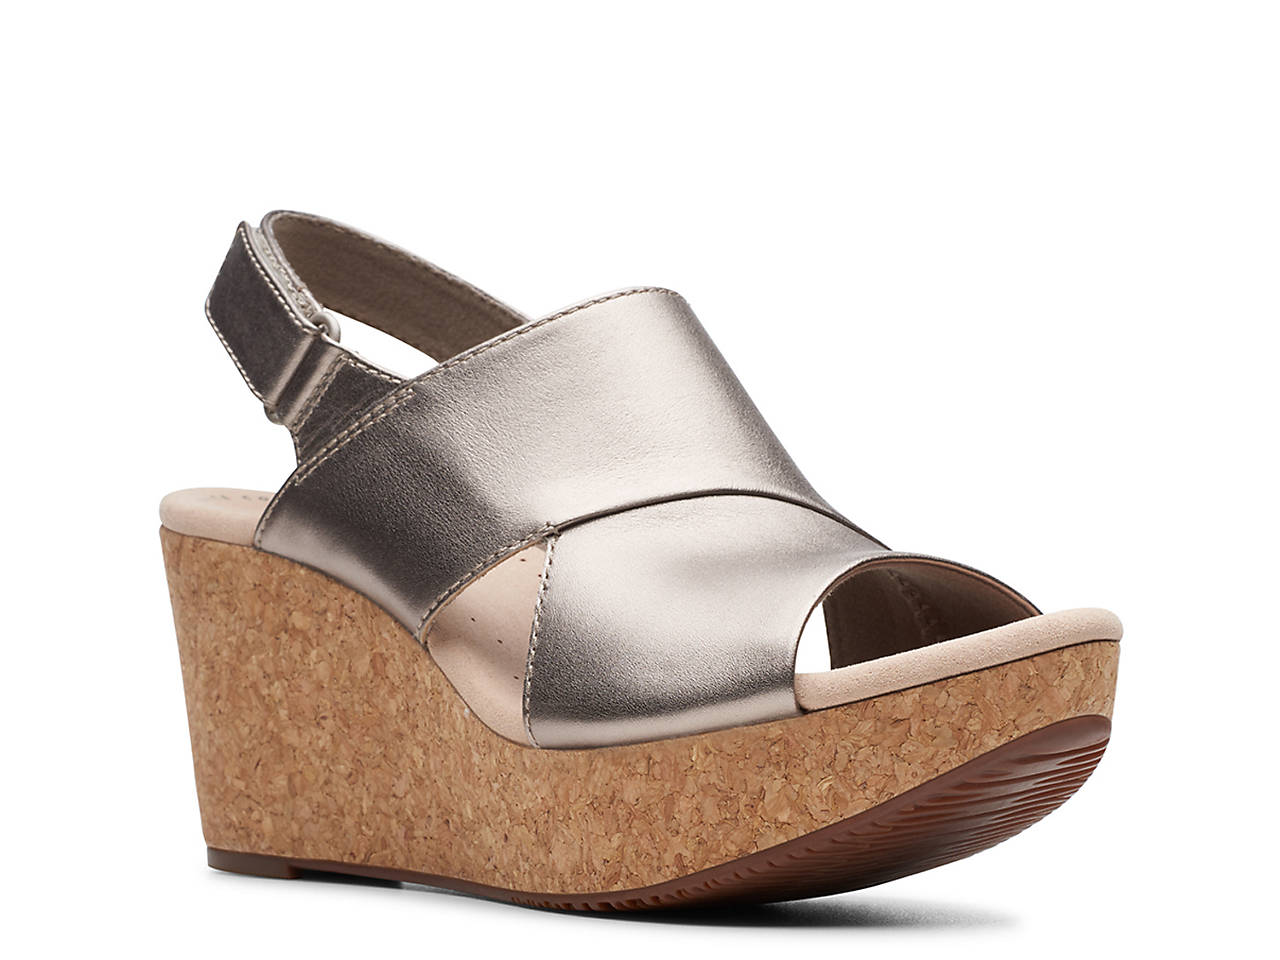 5cb8606fe0b Clarks Annadel Sky Wedge Sandal Women s Shoes